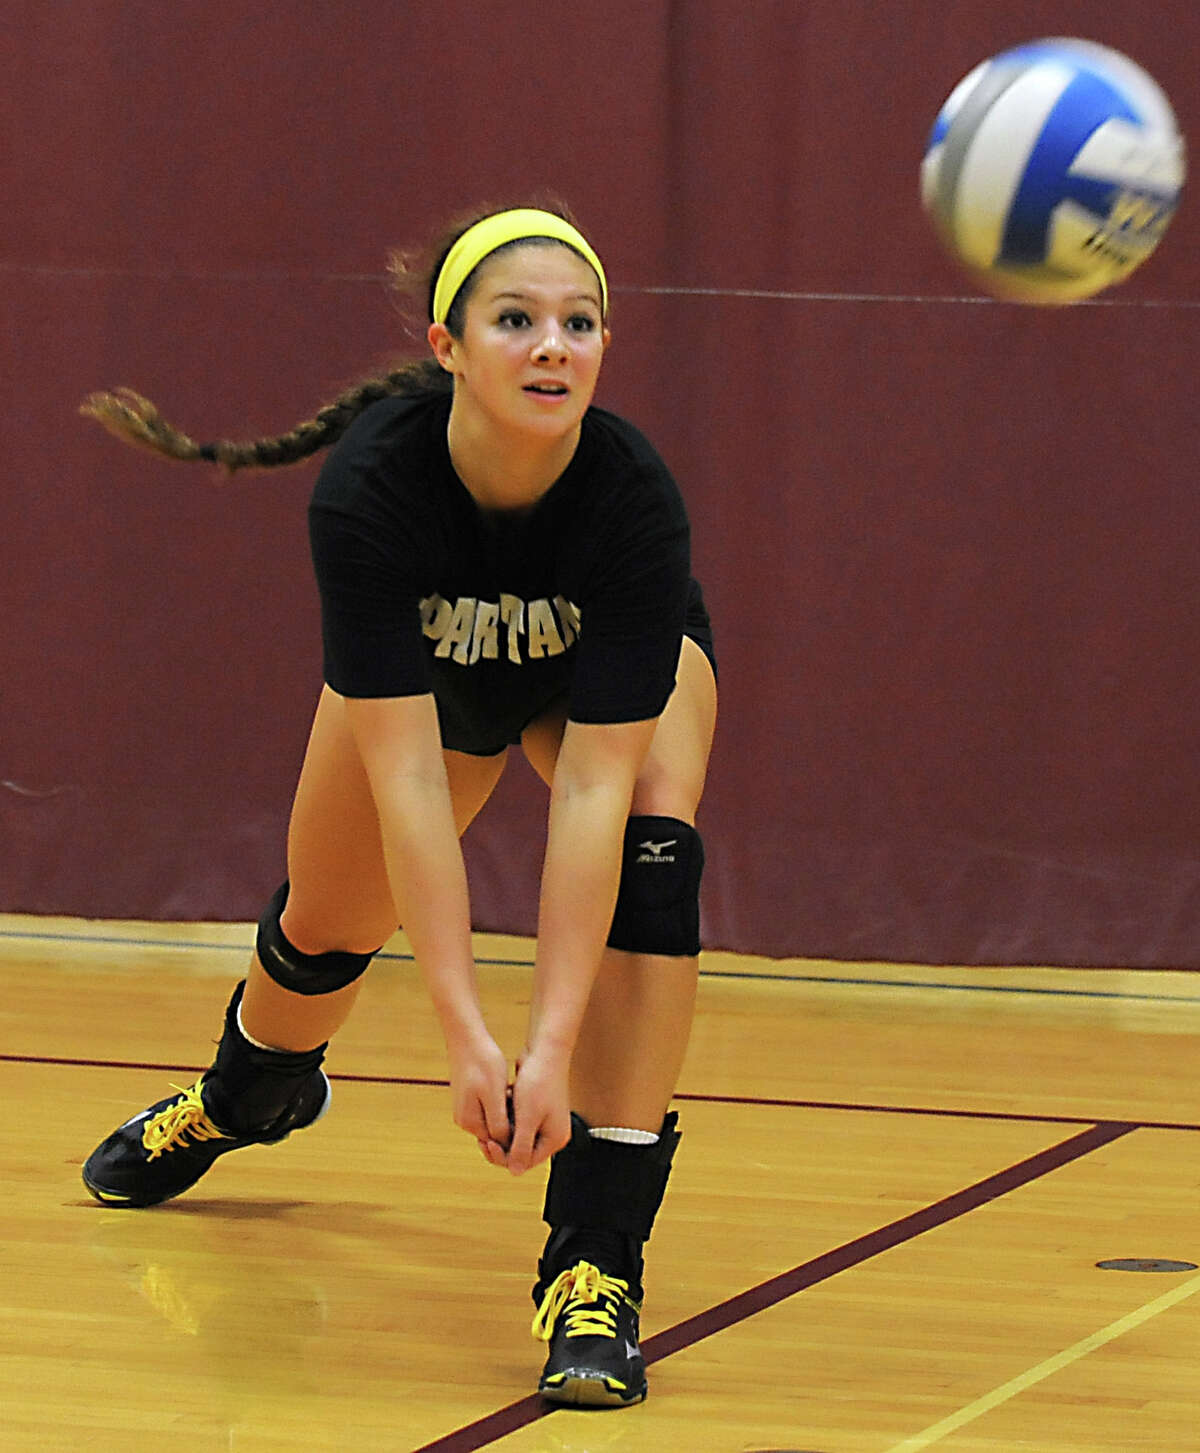 Burnt Hill's Natalie Schurman hits the ball as she practices with her volleyball team for an upcoming regional final on Tuesday, Nov. 10, 2015 in Burnt Hills, N.Y. (Lori Van Buren / Times Union)